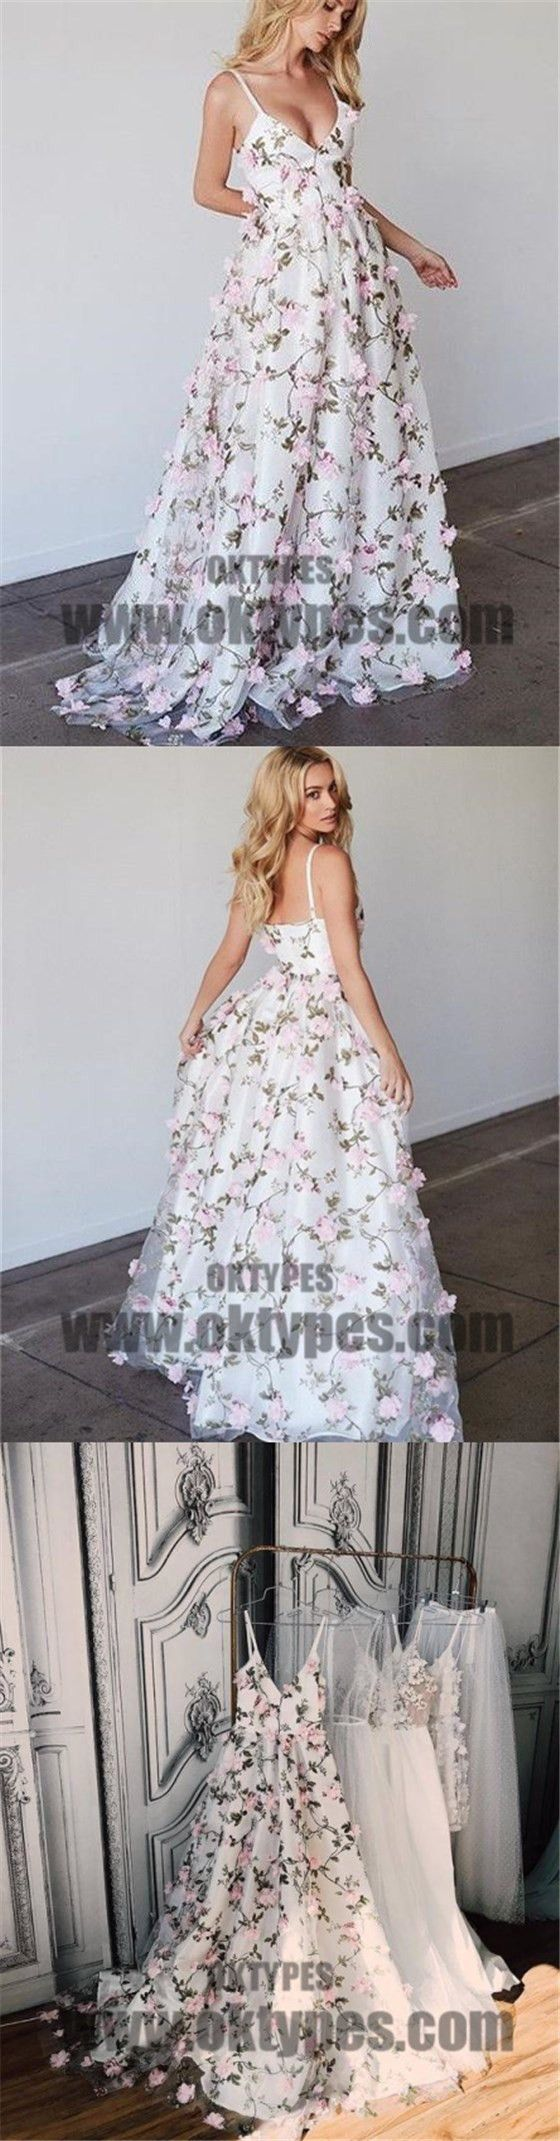 floral pink prom dress lace long prom dress handmade flower